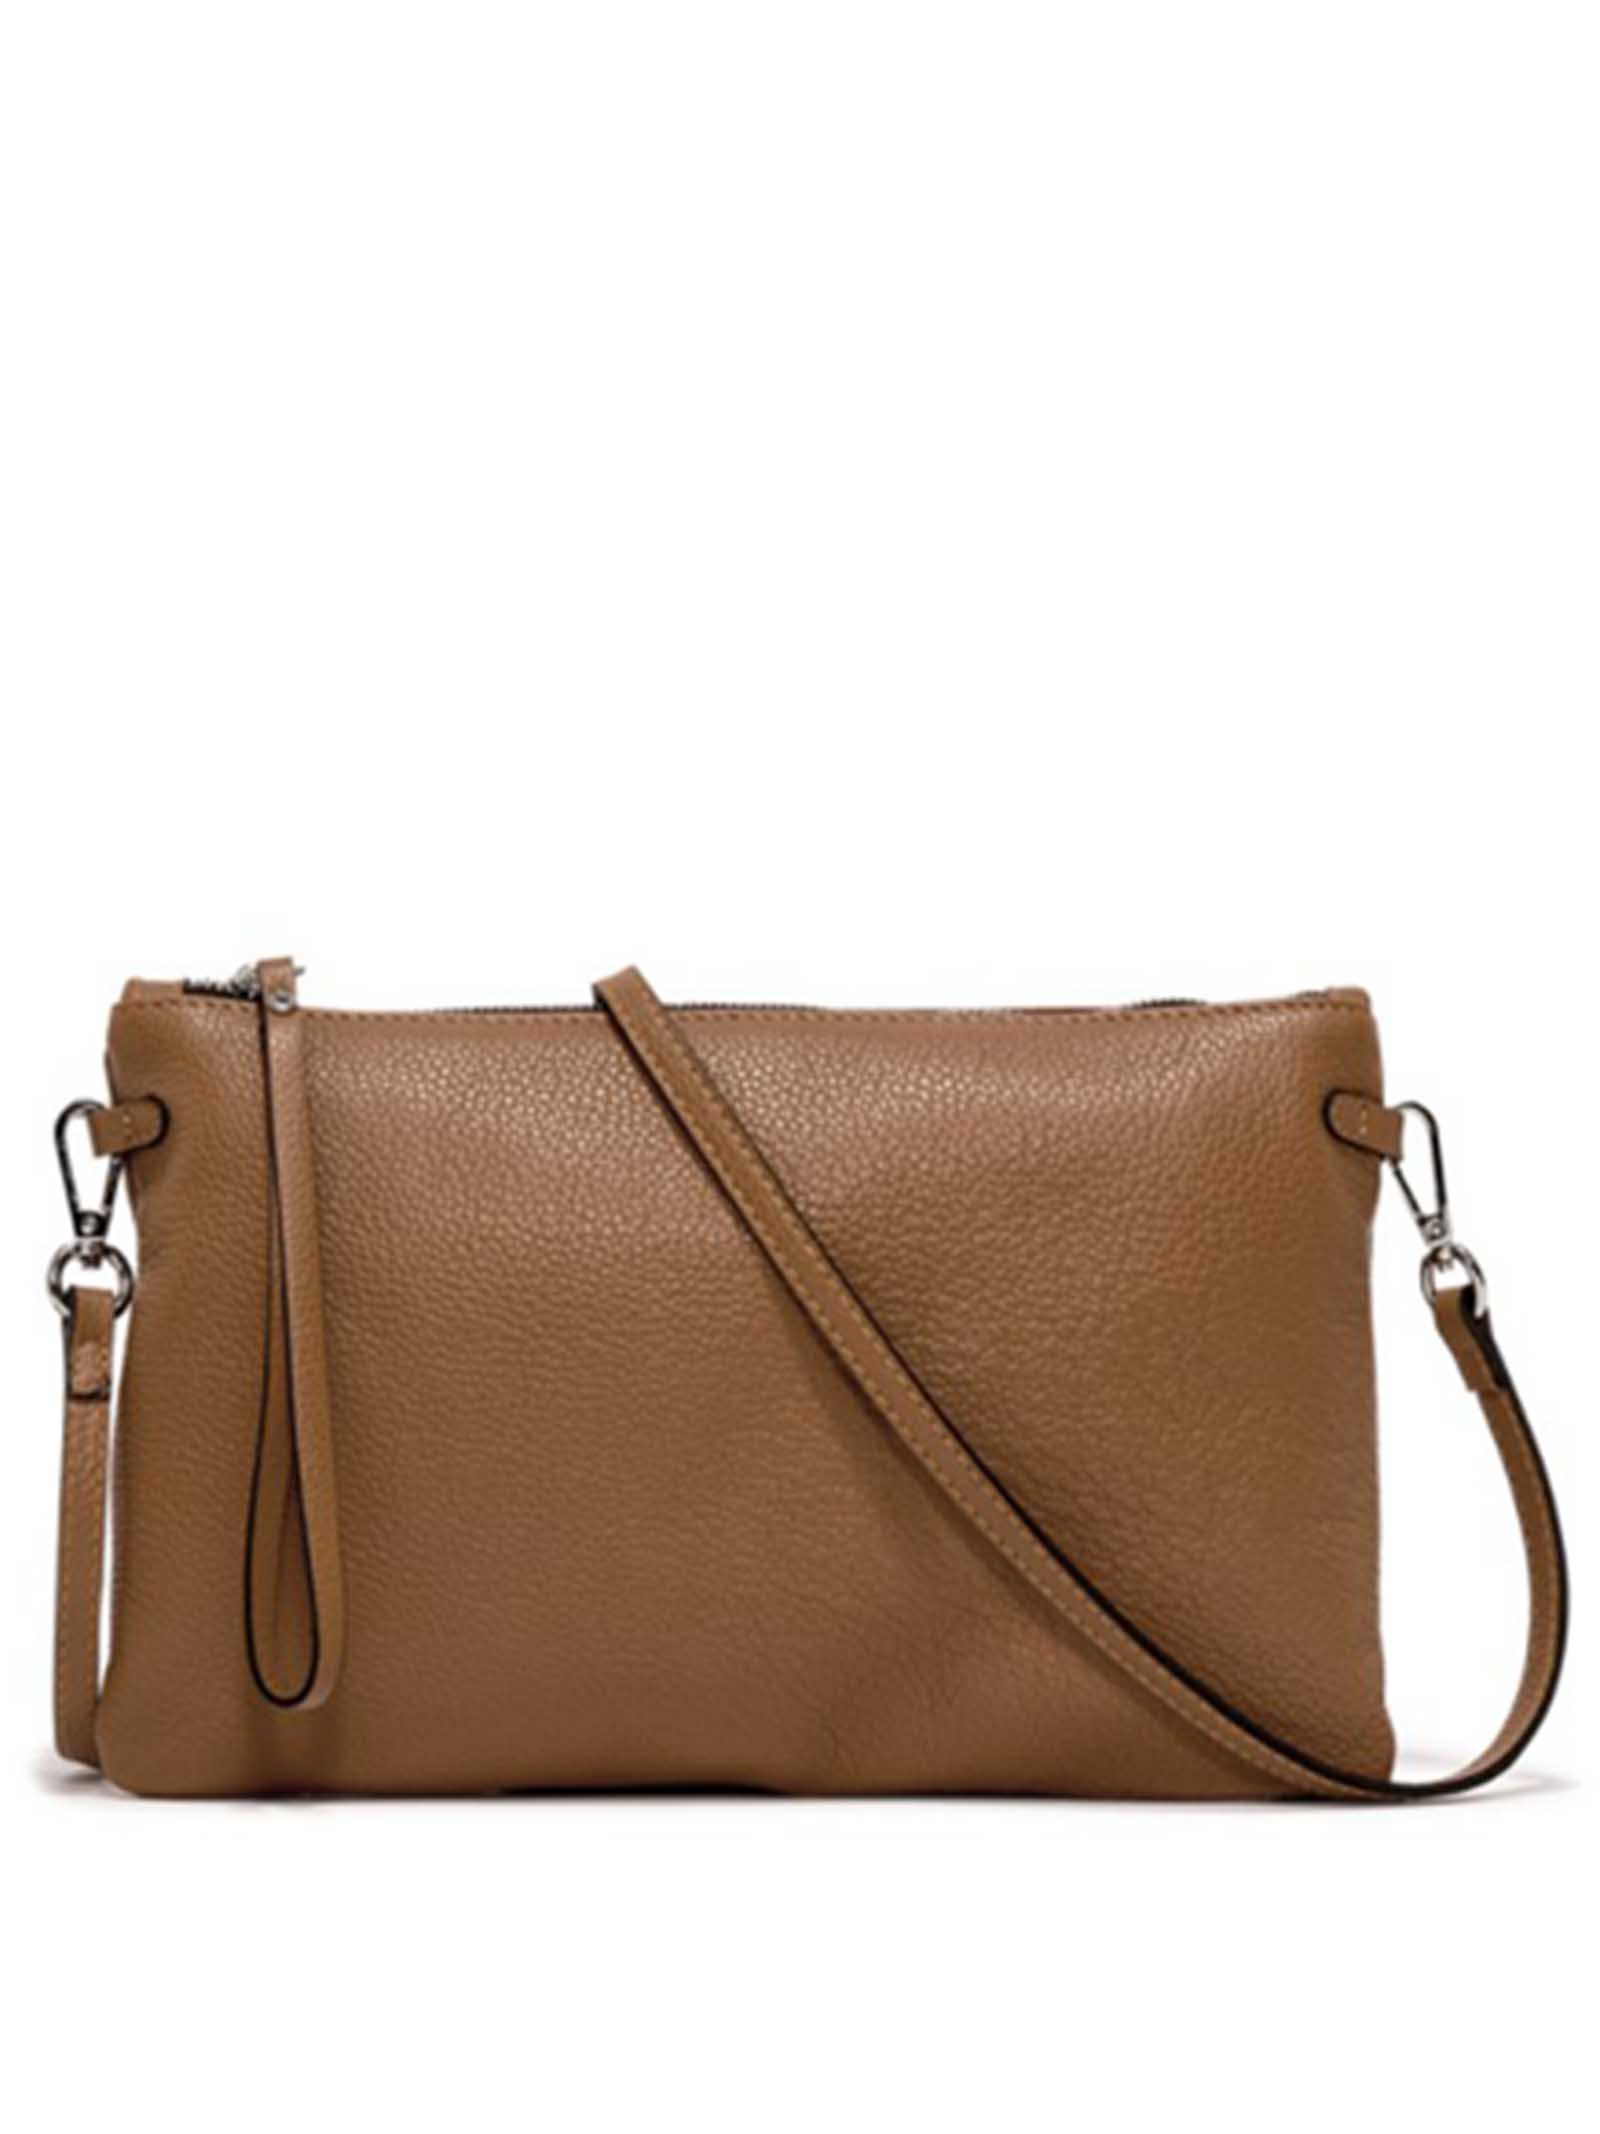 Women's Clutch Bag Maxi Hermy in Camel Leather with Handle And Cross-body Strap Adjustable And Detachable Gianni Chiarini   Bags and backpacks   BS3695009